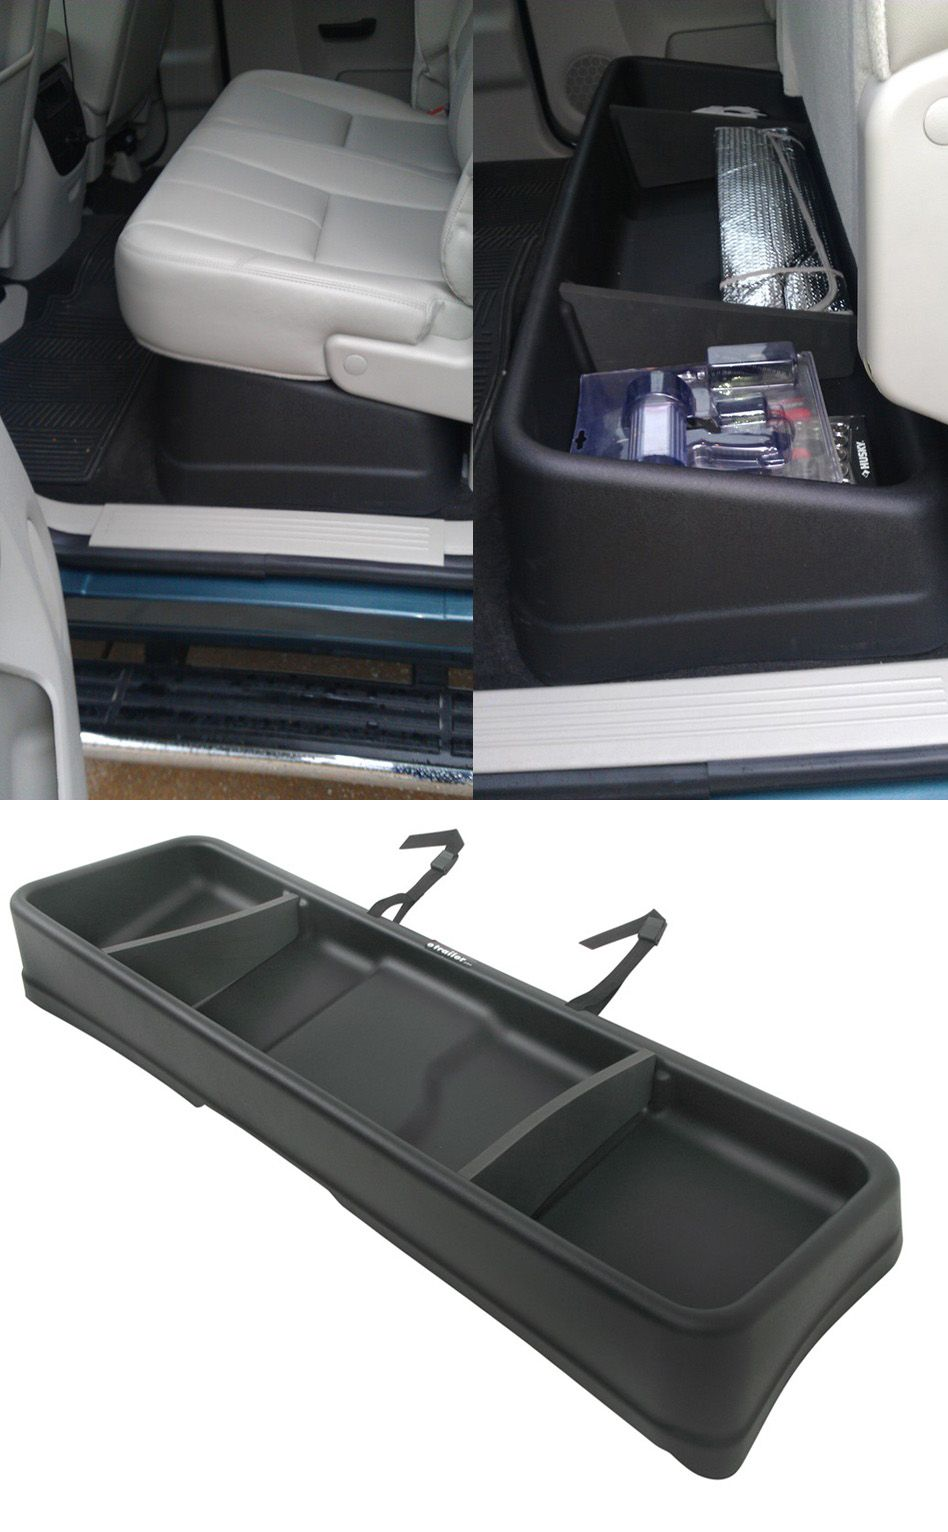 medium resolution of large capacity cargo box compatible with the gmc sierra and fits perfectly beneath the rear seats of the truck minimizes cargo shifting store tools